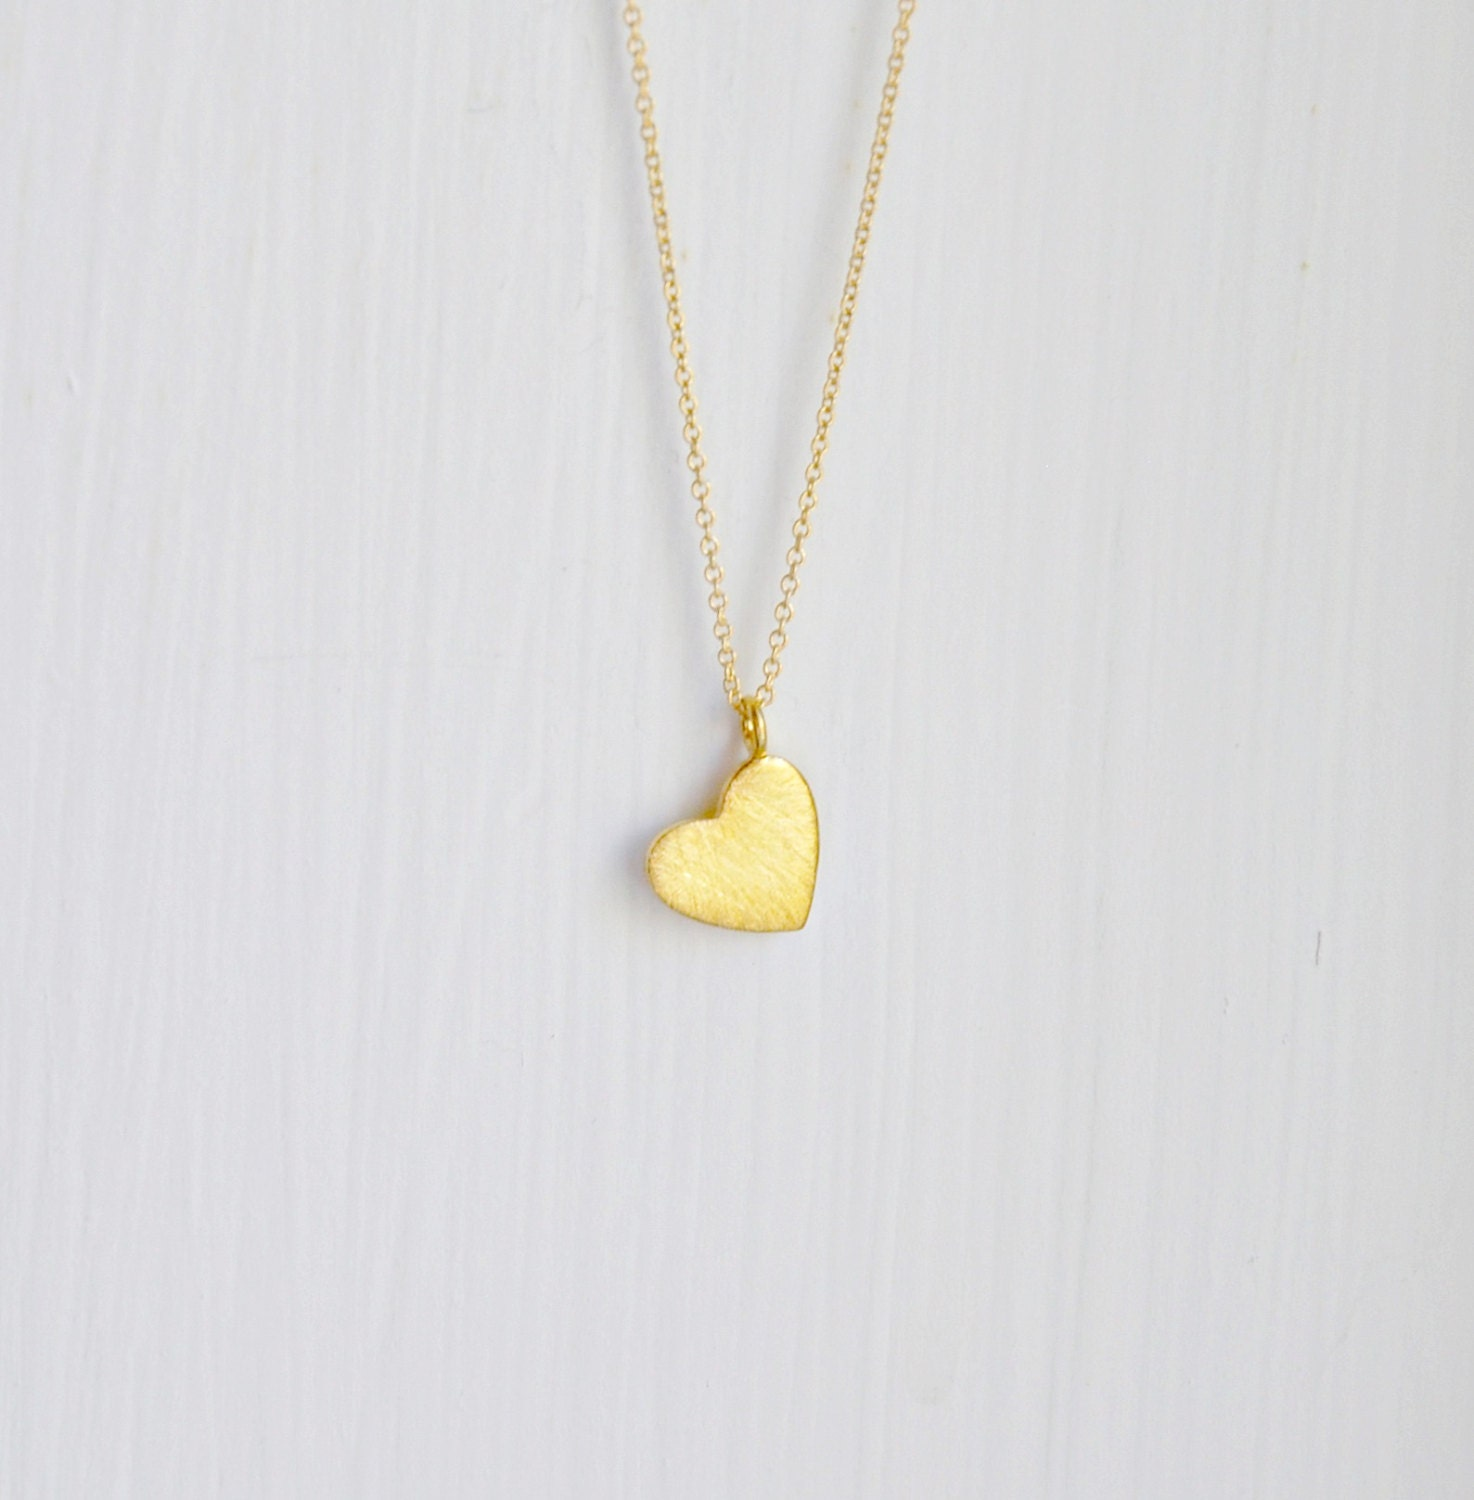 gold necklace pin vermeil brushed charm pendant heart flat